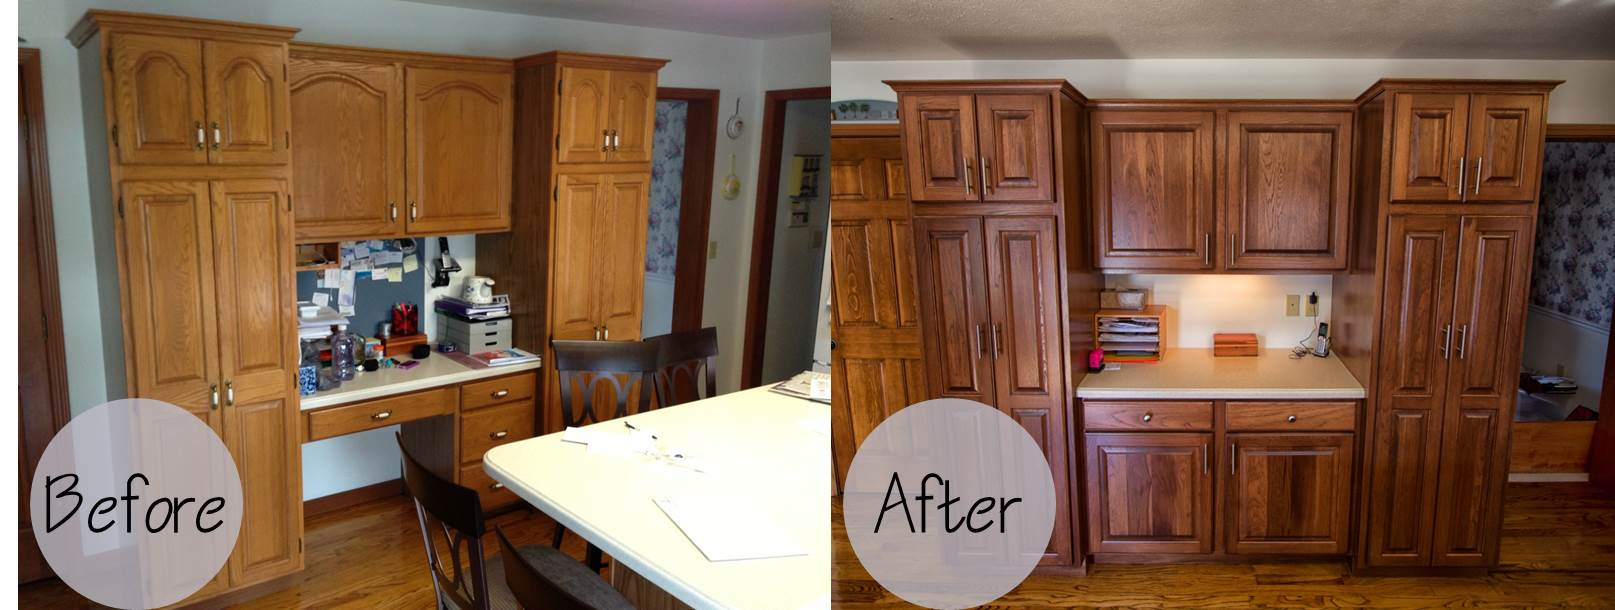 Cabinet Refacing Bucks County PA Kitchen Cabinet Refacers - Kitchen cabinet refinish